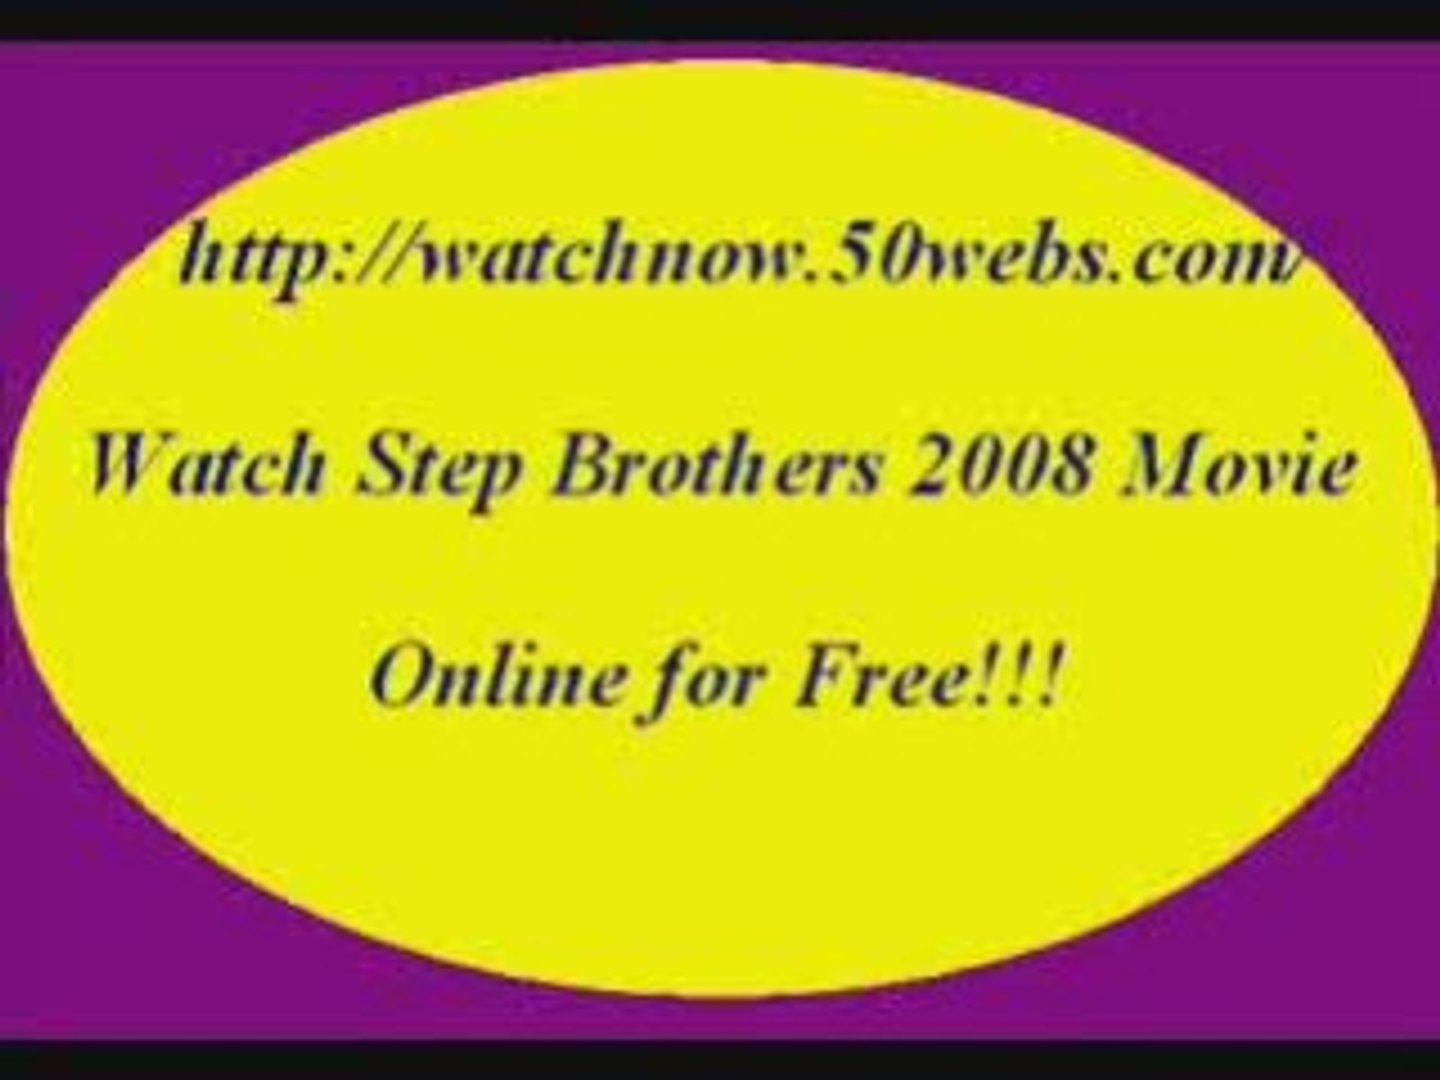 Watch Step Brothers Movie Online For Free Video Dailymotion